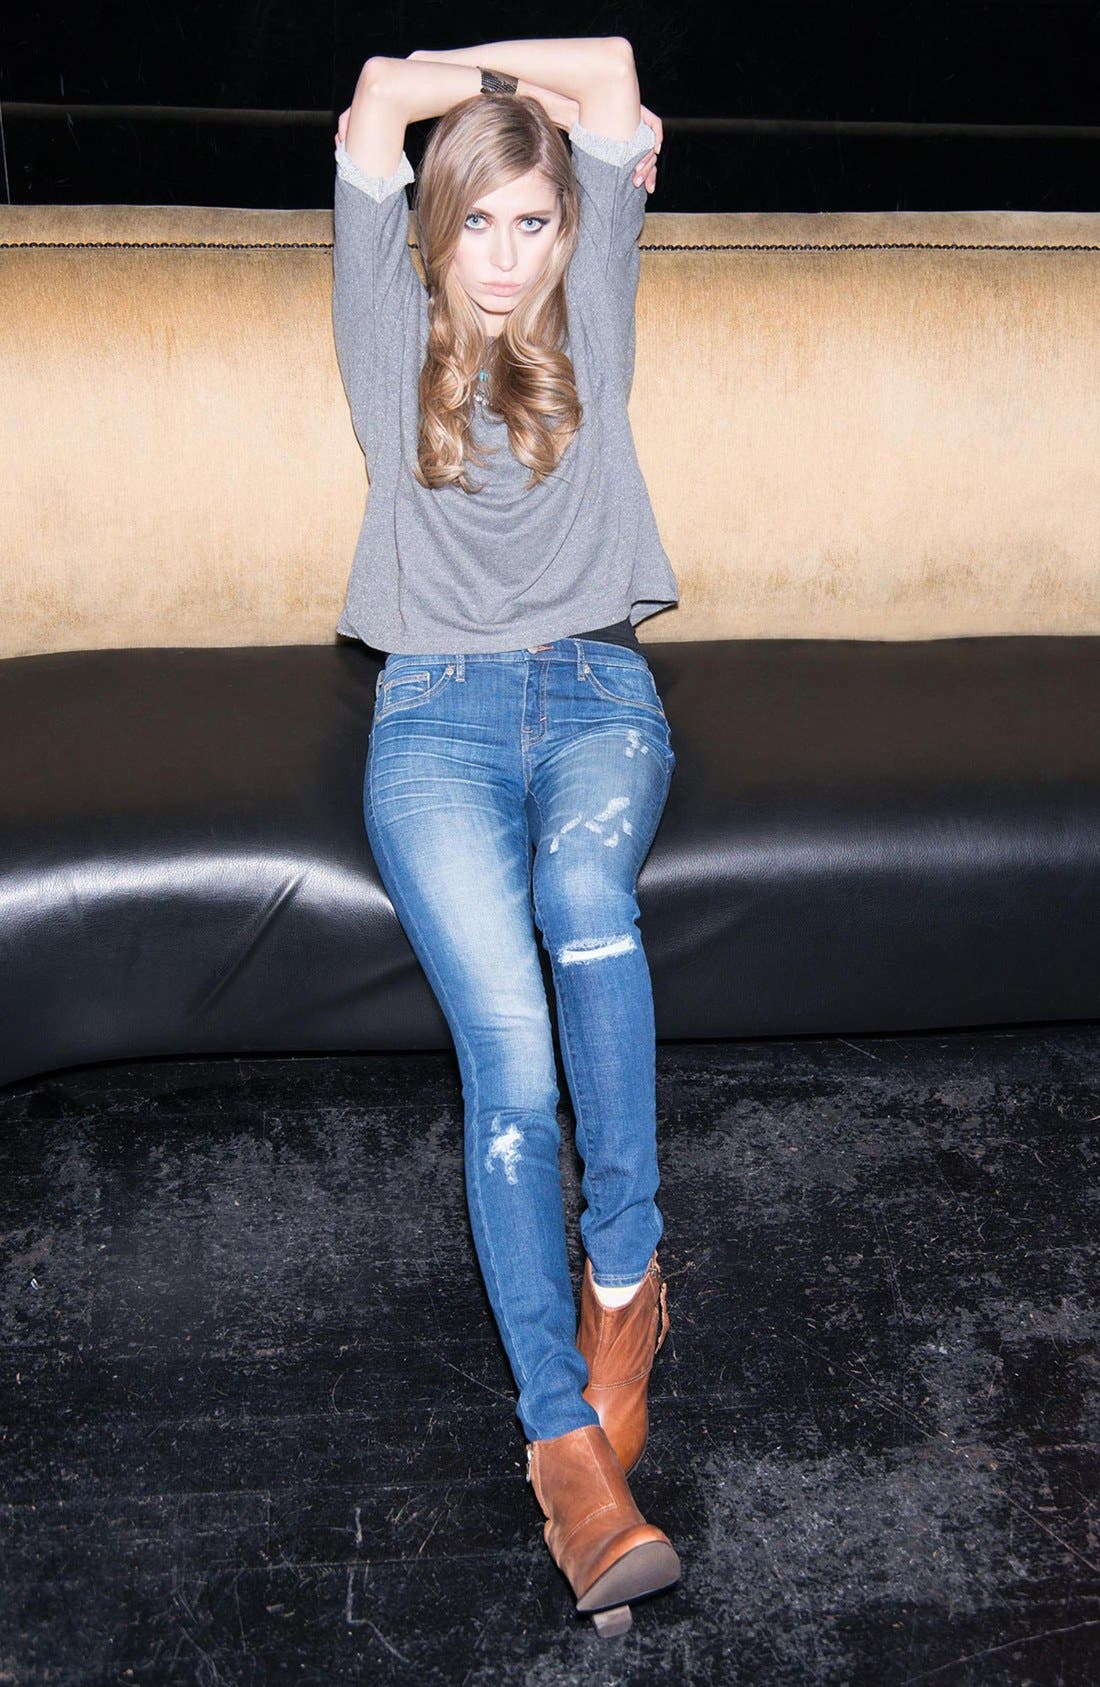 Alternate Image 4  - Dittos 'Jessica' Distressed Low Rise Skinny Jeans (Calypso)